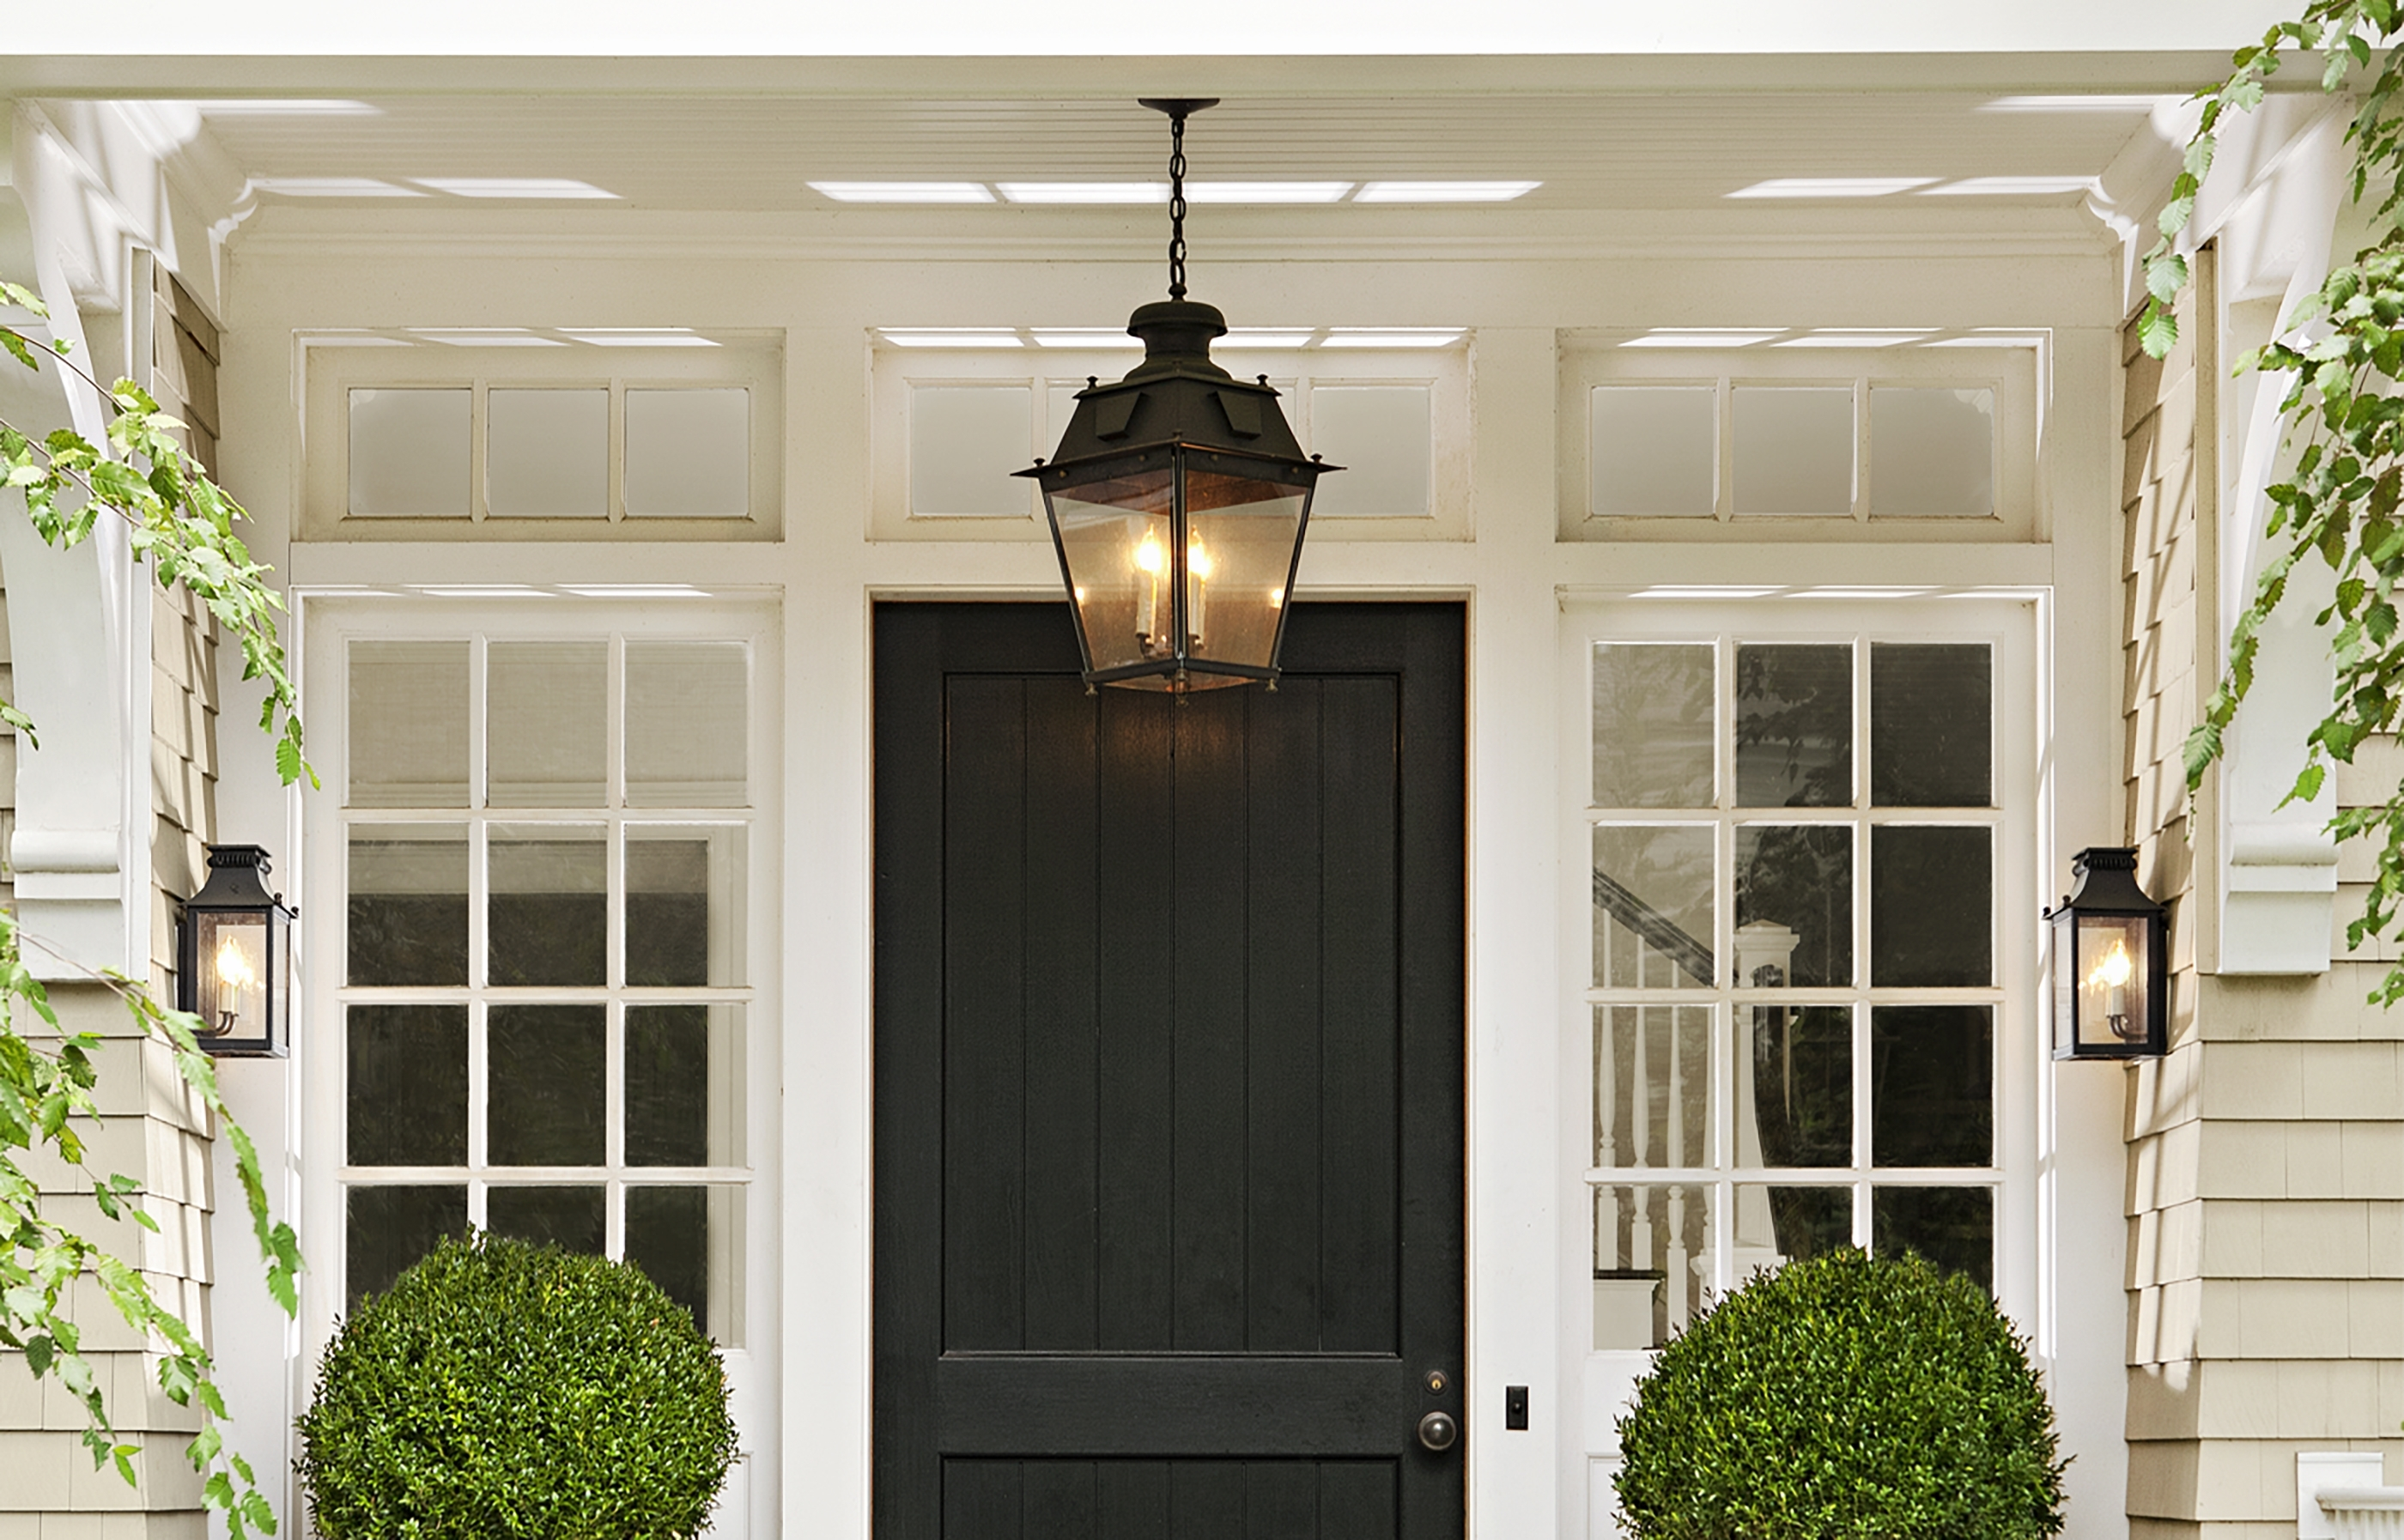 Trendy Front Porch Light Fixtures Modern Ceiling Lowes – Teamns Throughout Outdoor Front Porch Ceiling Lights (View 19 of 20)